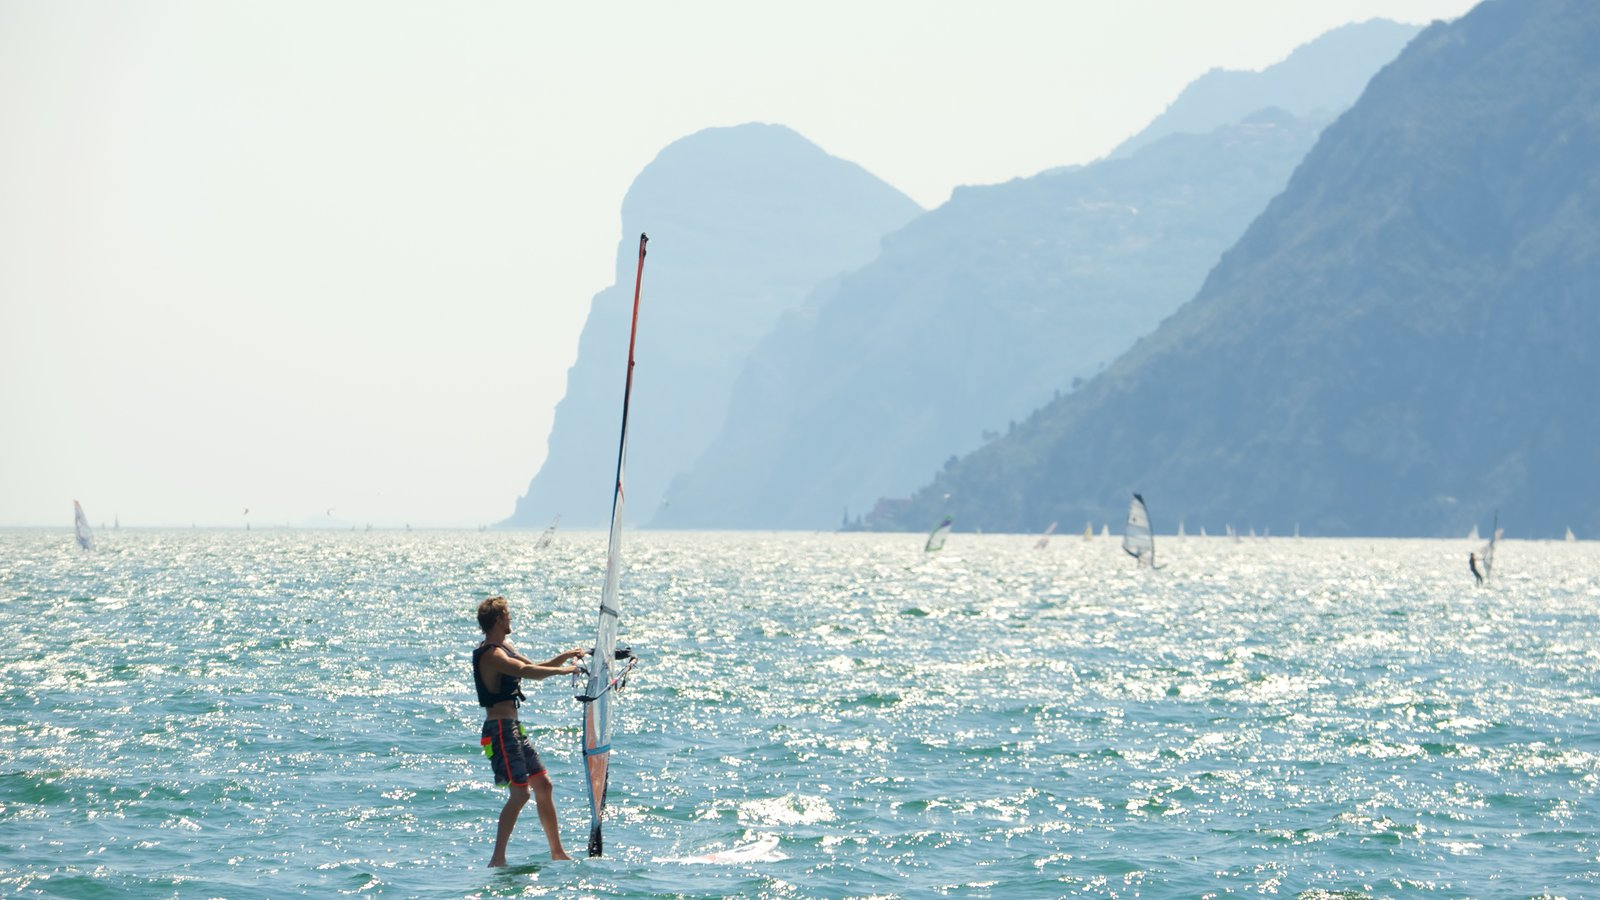 Nago-Torbole showing windsurfing, general coastal views and mountains